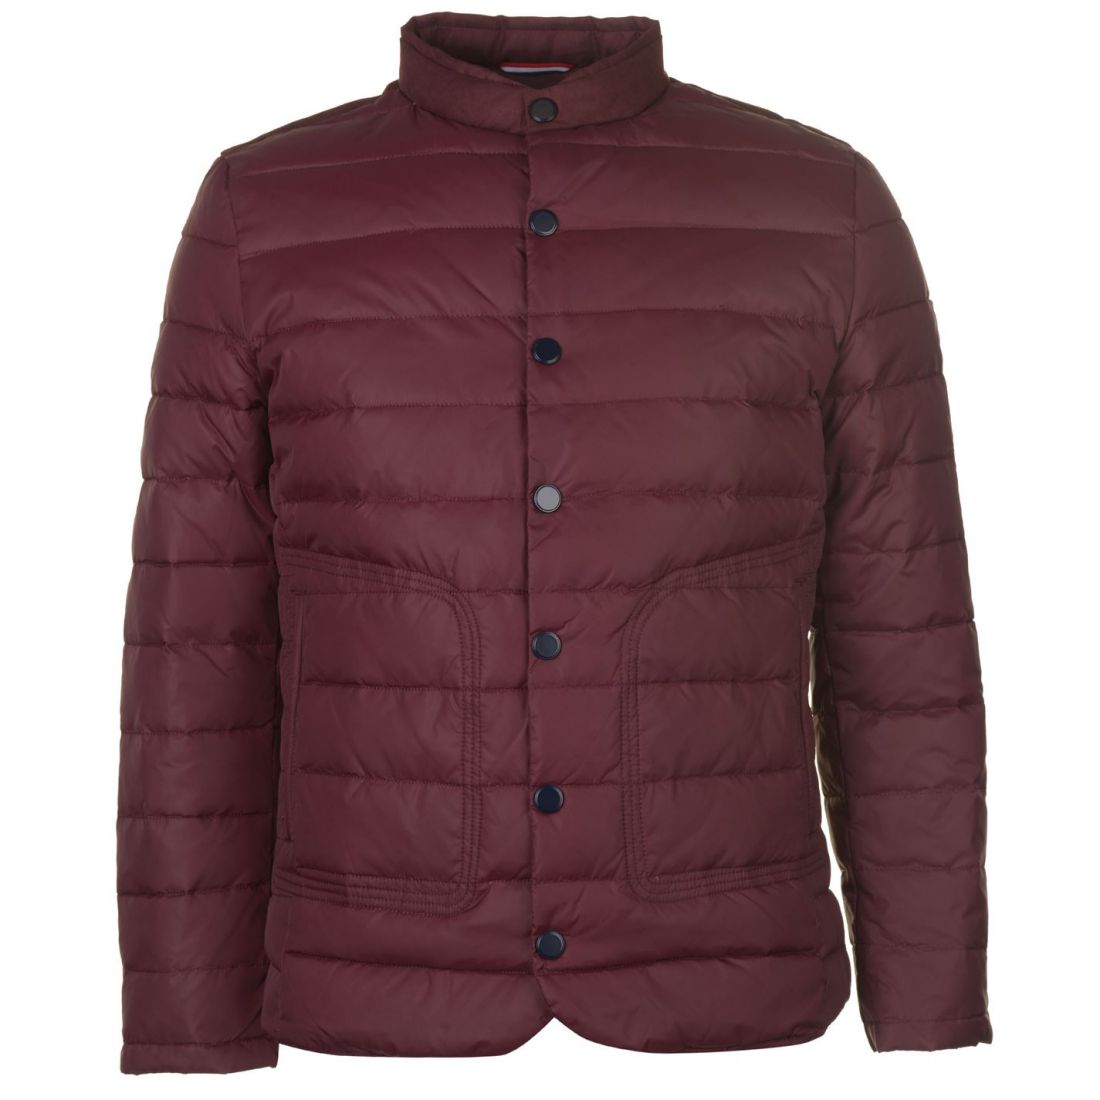 4cea6dcf2 Details about Lee Cooper Essential Down Jacket Mens Gents Coat Top Full  Length Sleeve